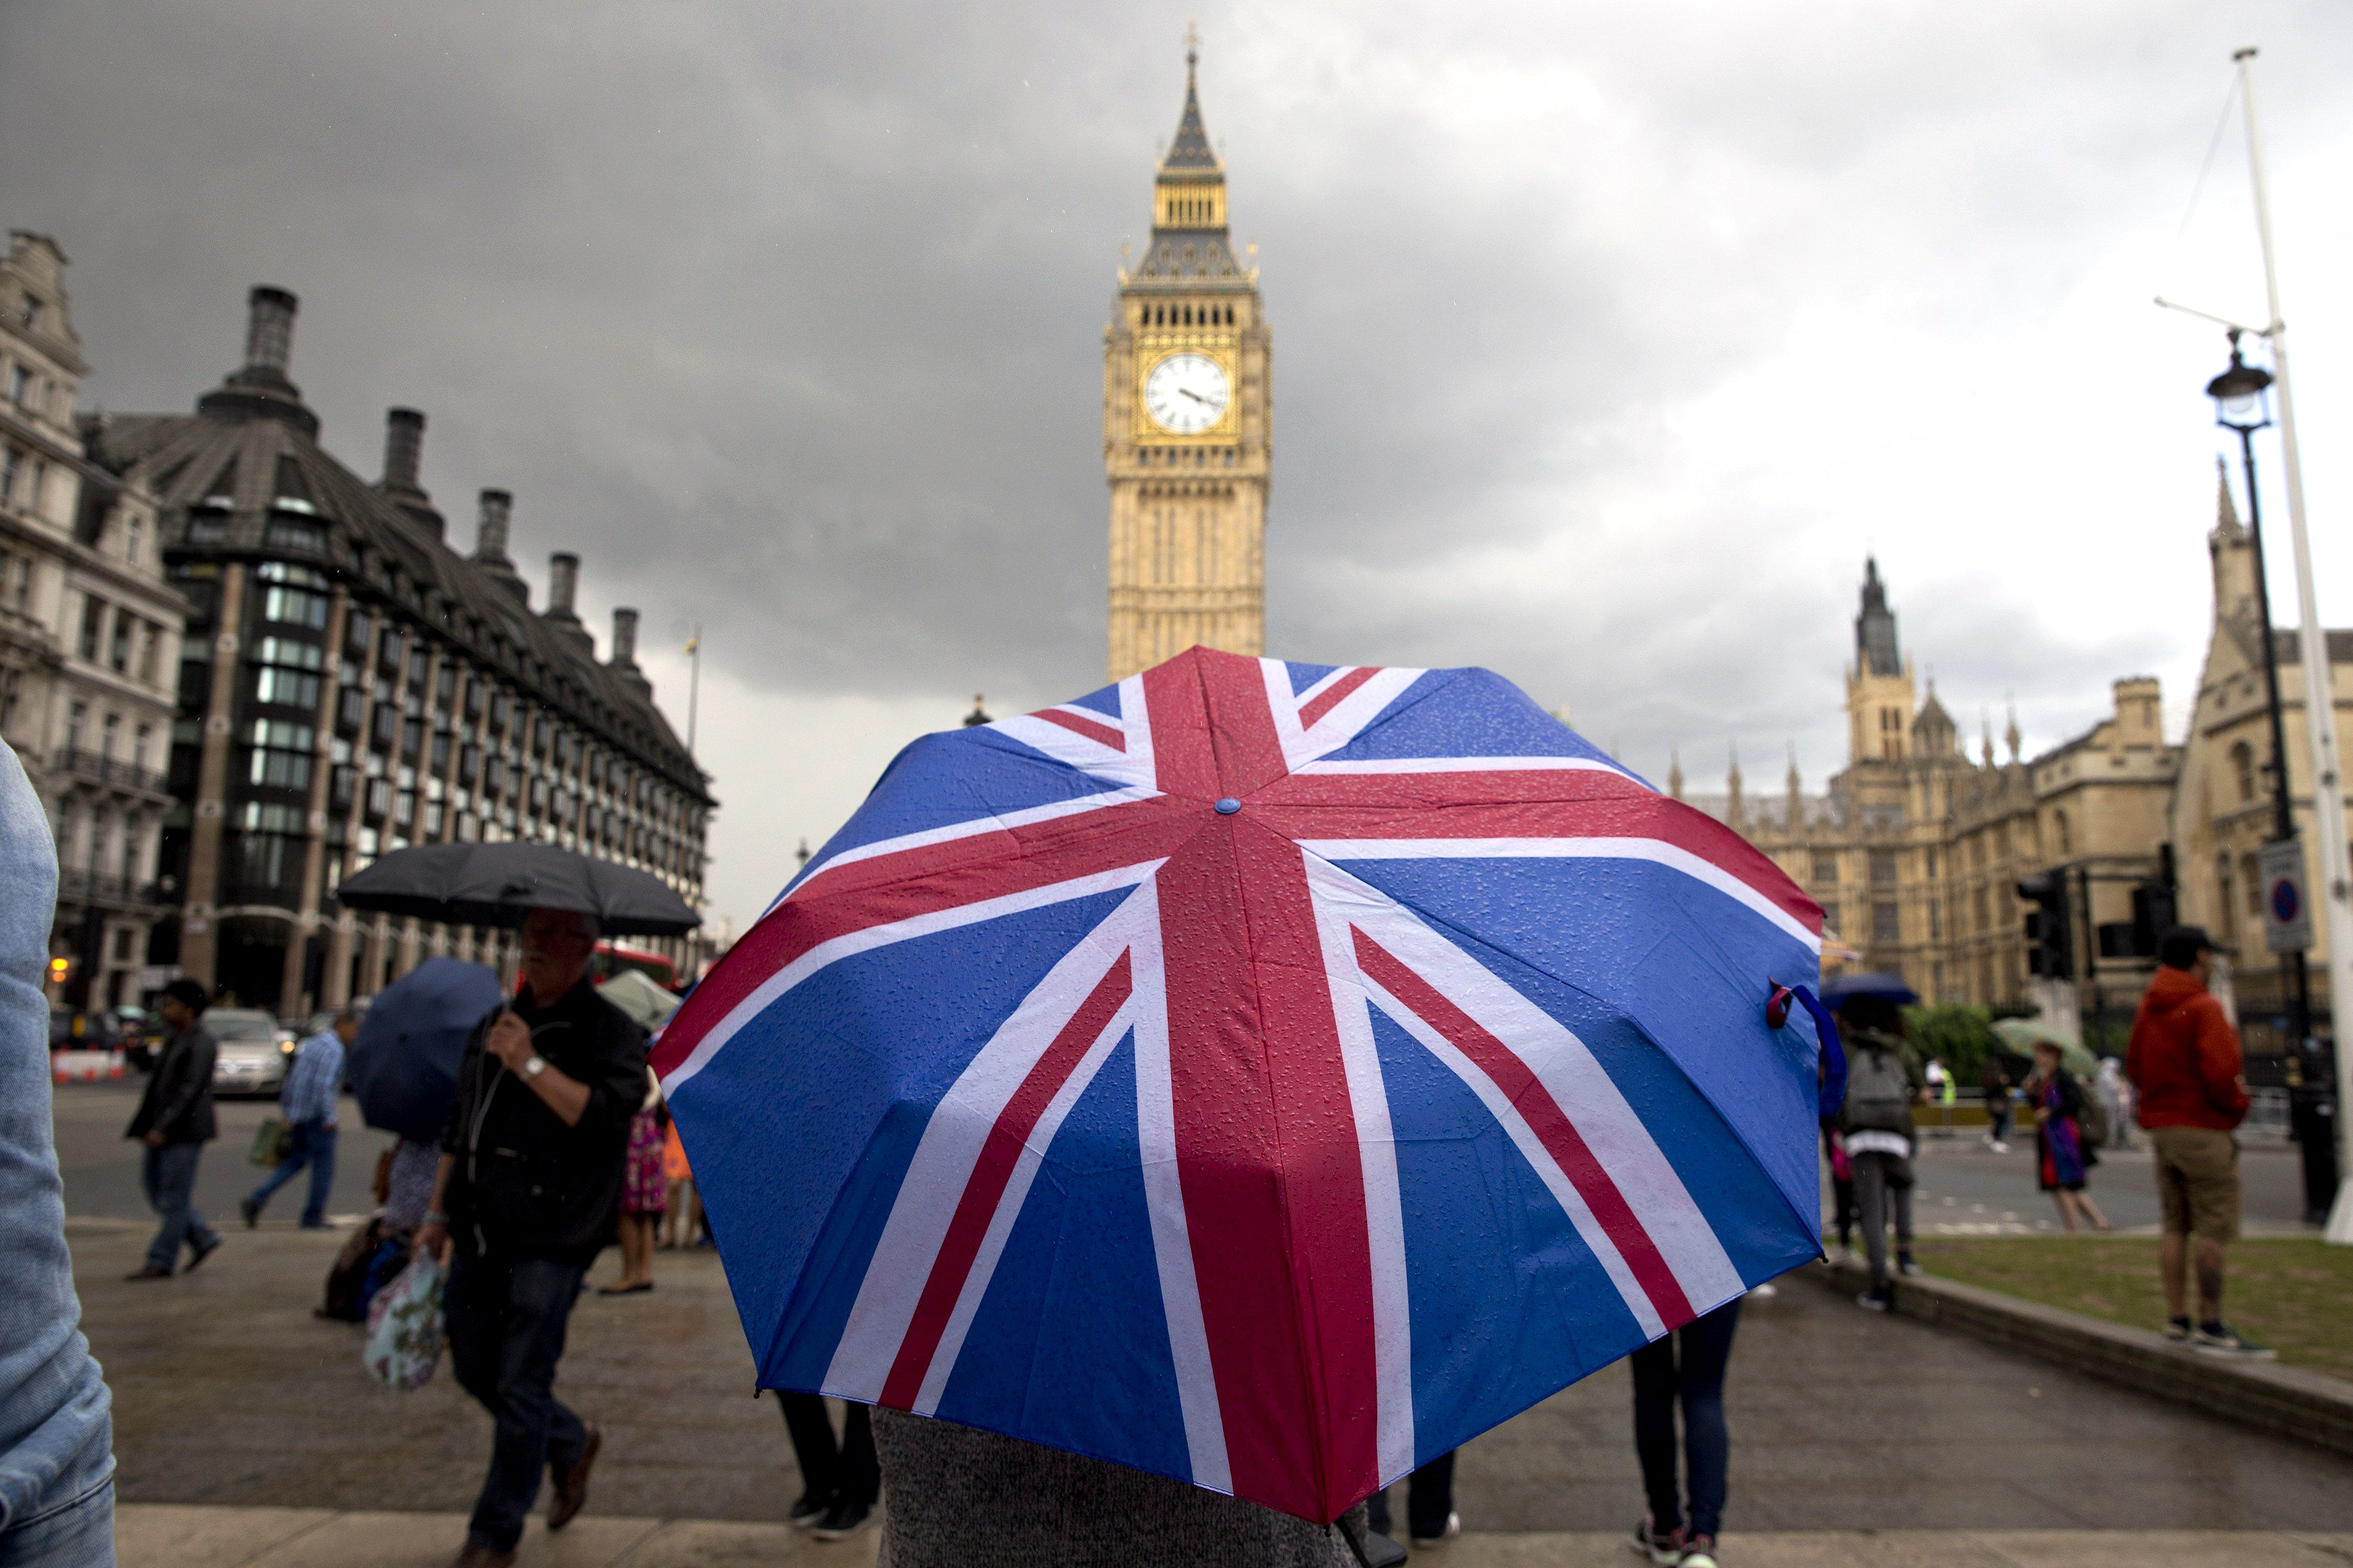 A pedestrian shelters from the rain beneath a Union flag themed umbrella as they walk near the Big Ben clock face and the Elizabeth Tower at the Houses of Parliament in central London on June 25, 2016, following the pro-Brexit result of the U.K.'s EU referendum vote. (Justin Tallis/AFP/Getty Images)